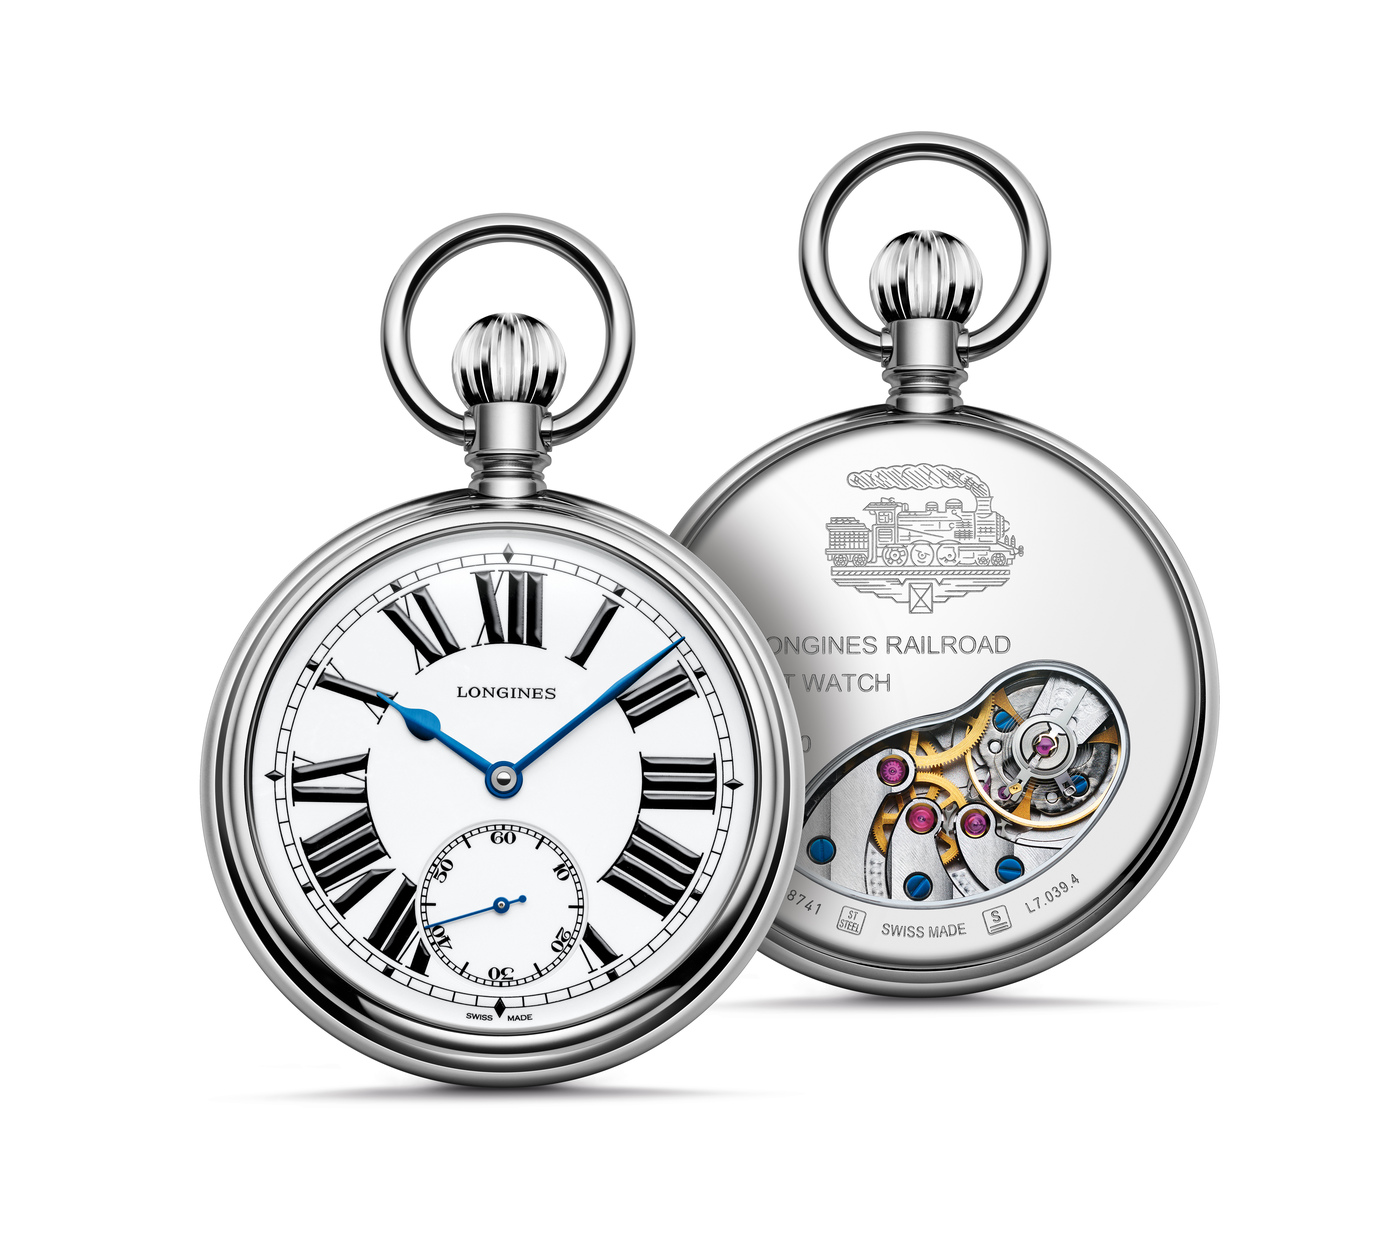 Longines The Longines RailRoad Pocket Watch Watch 1